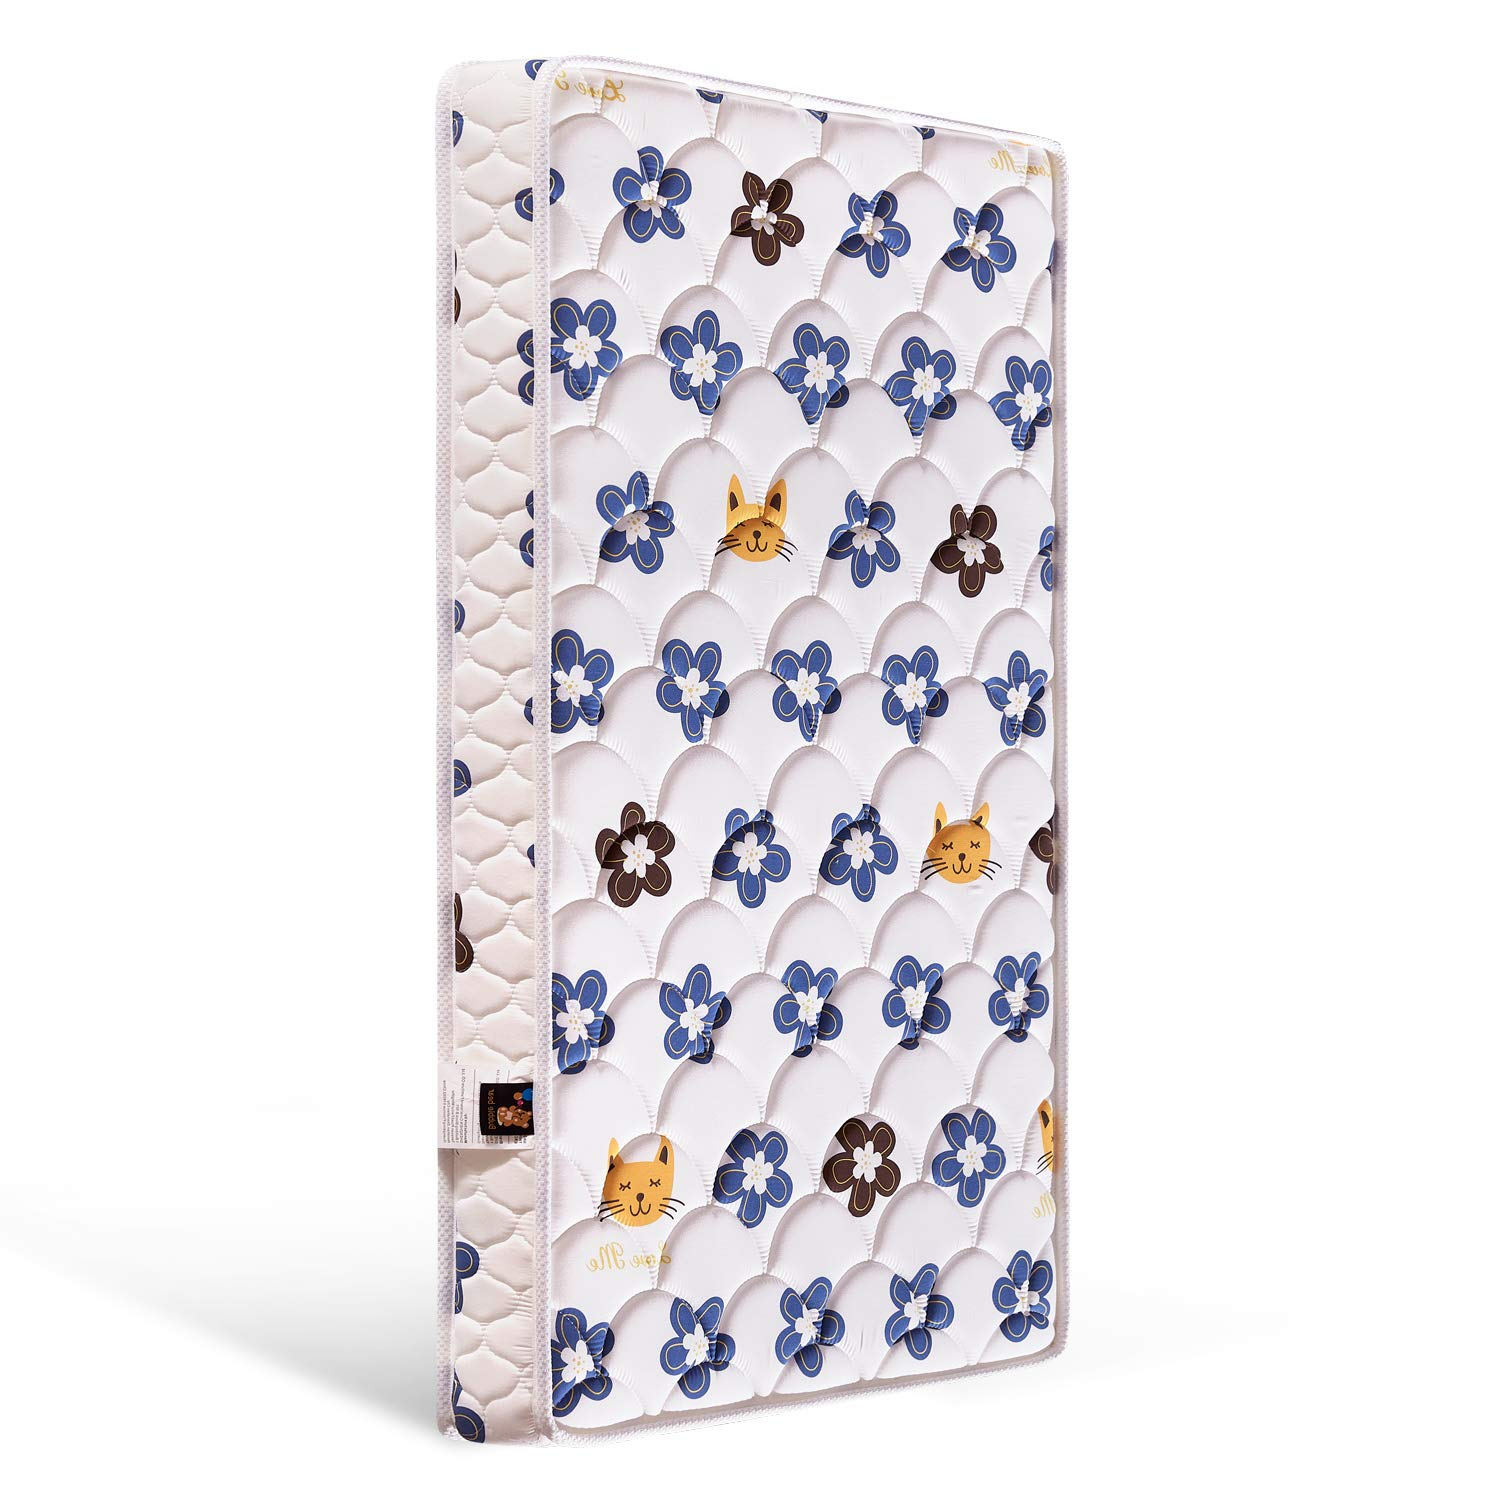 Bubble bear Premium Foam Hypoallergenic Infant Crib Mattress and Toddler Bed Mattress (Comfortable/Non-Toxic)   Fox and Flower   Size:52X27.6X5